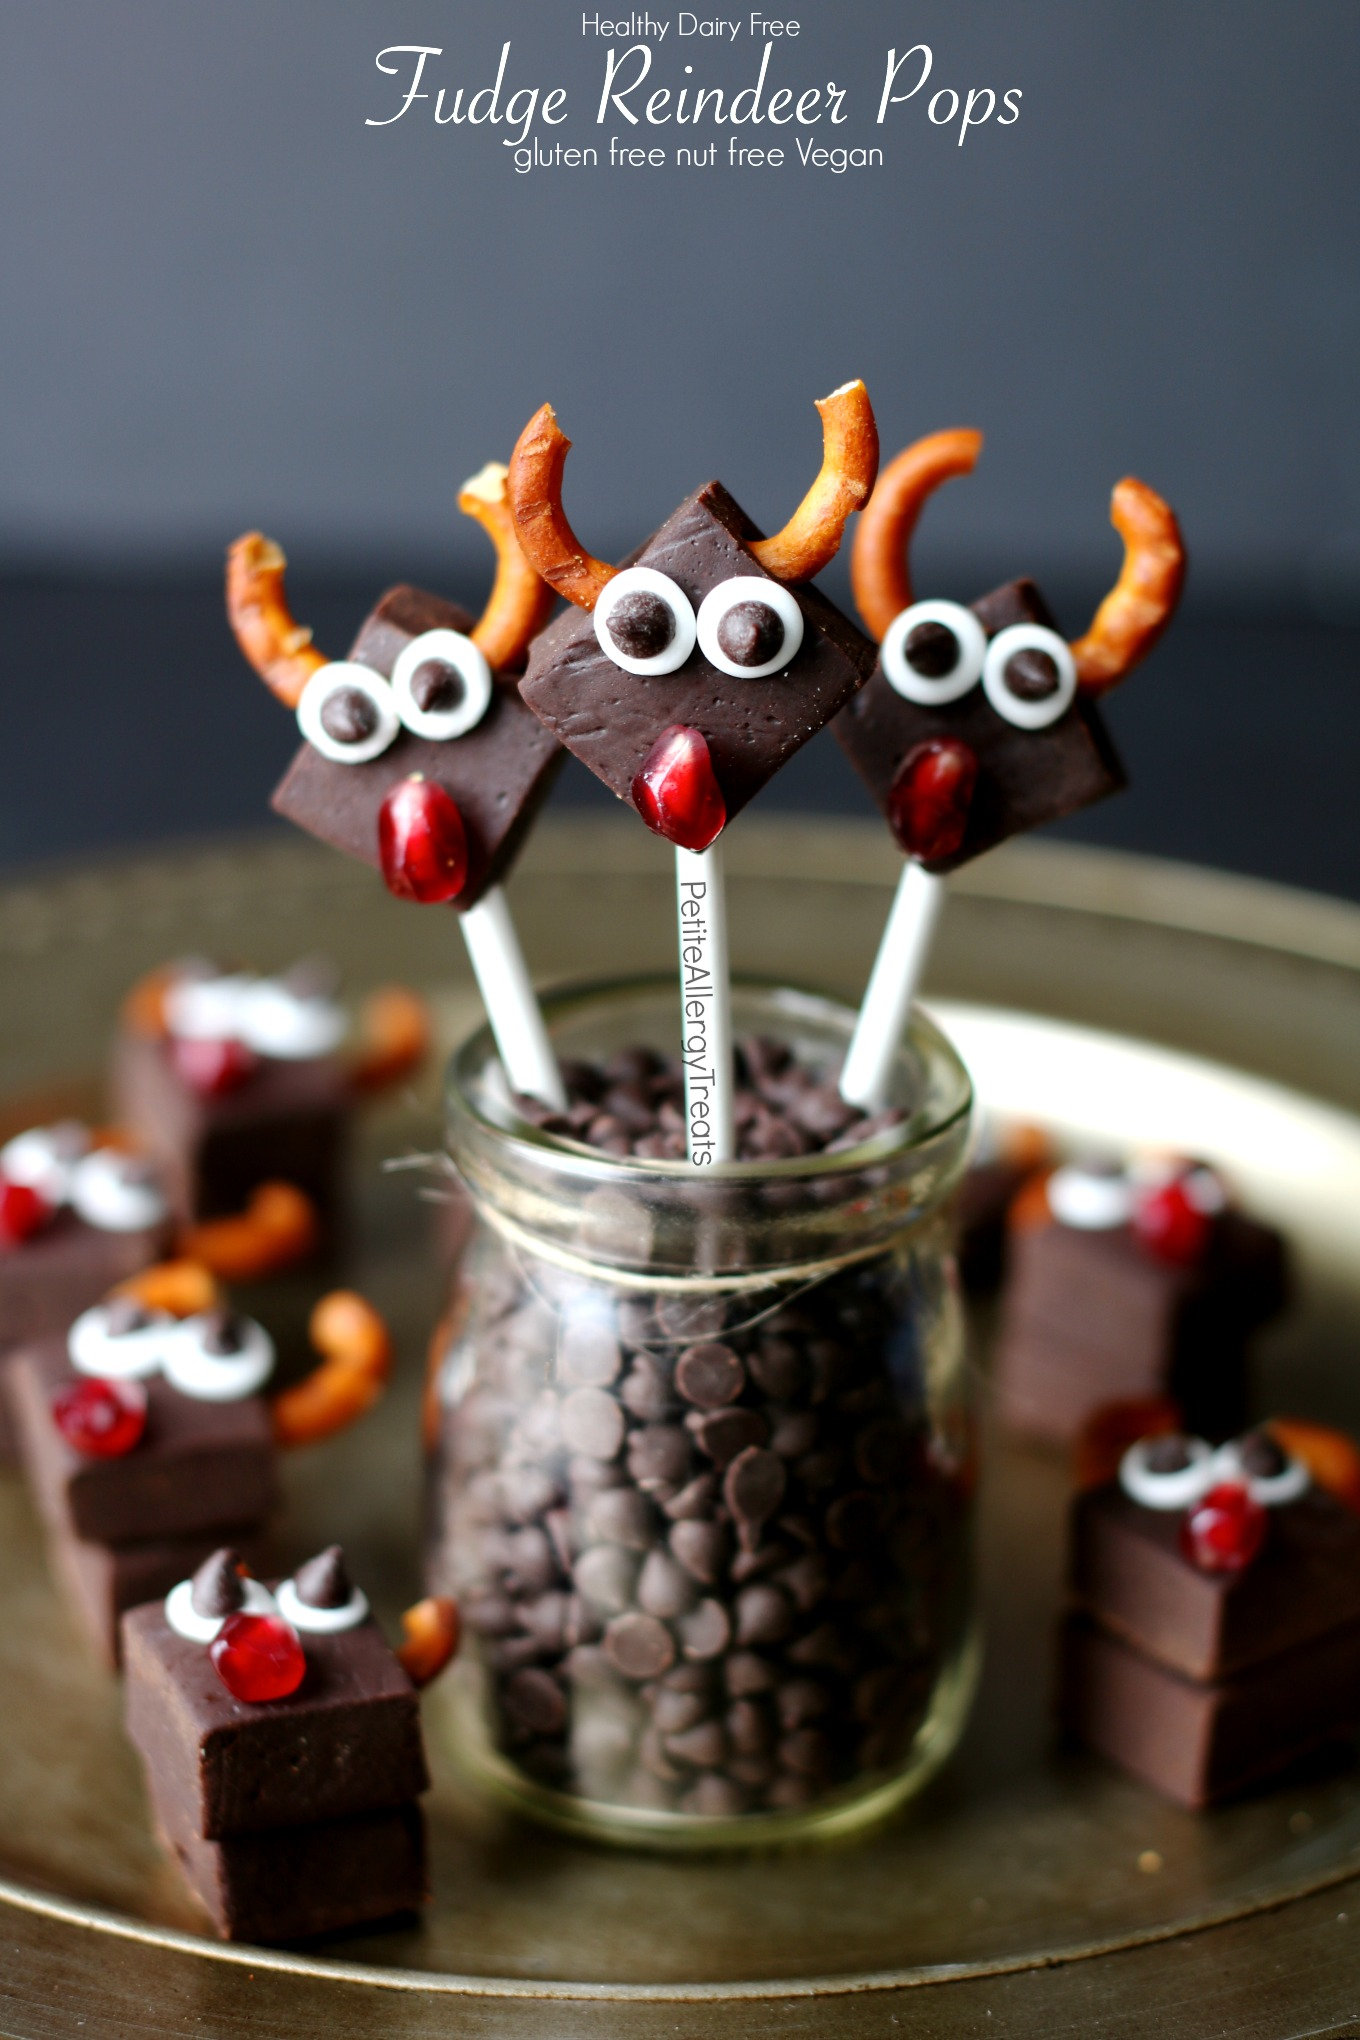 Healthy Dairy Free Fudge Reindeer Pops Recipe (vegan gluten free)- No Bake Adorable reindeer pops for Christmas! Dye free gluten free and food allergy friendly